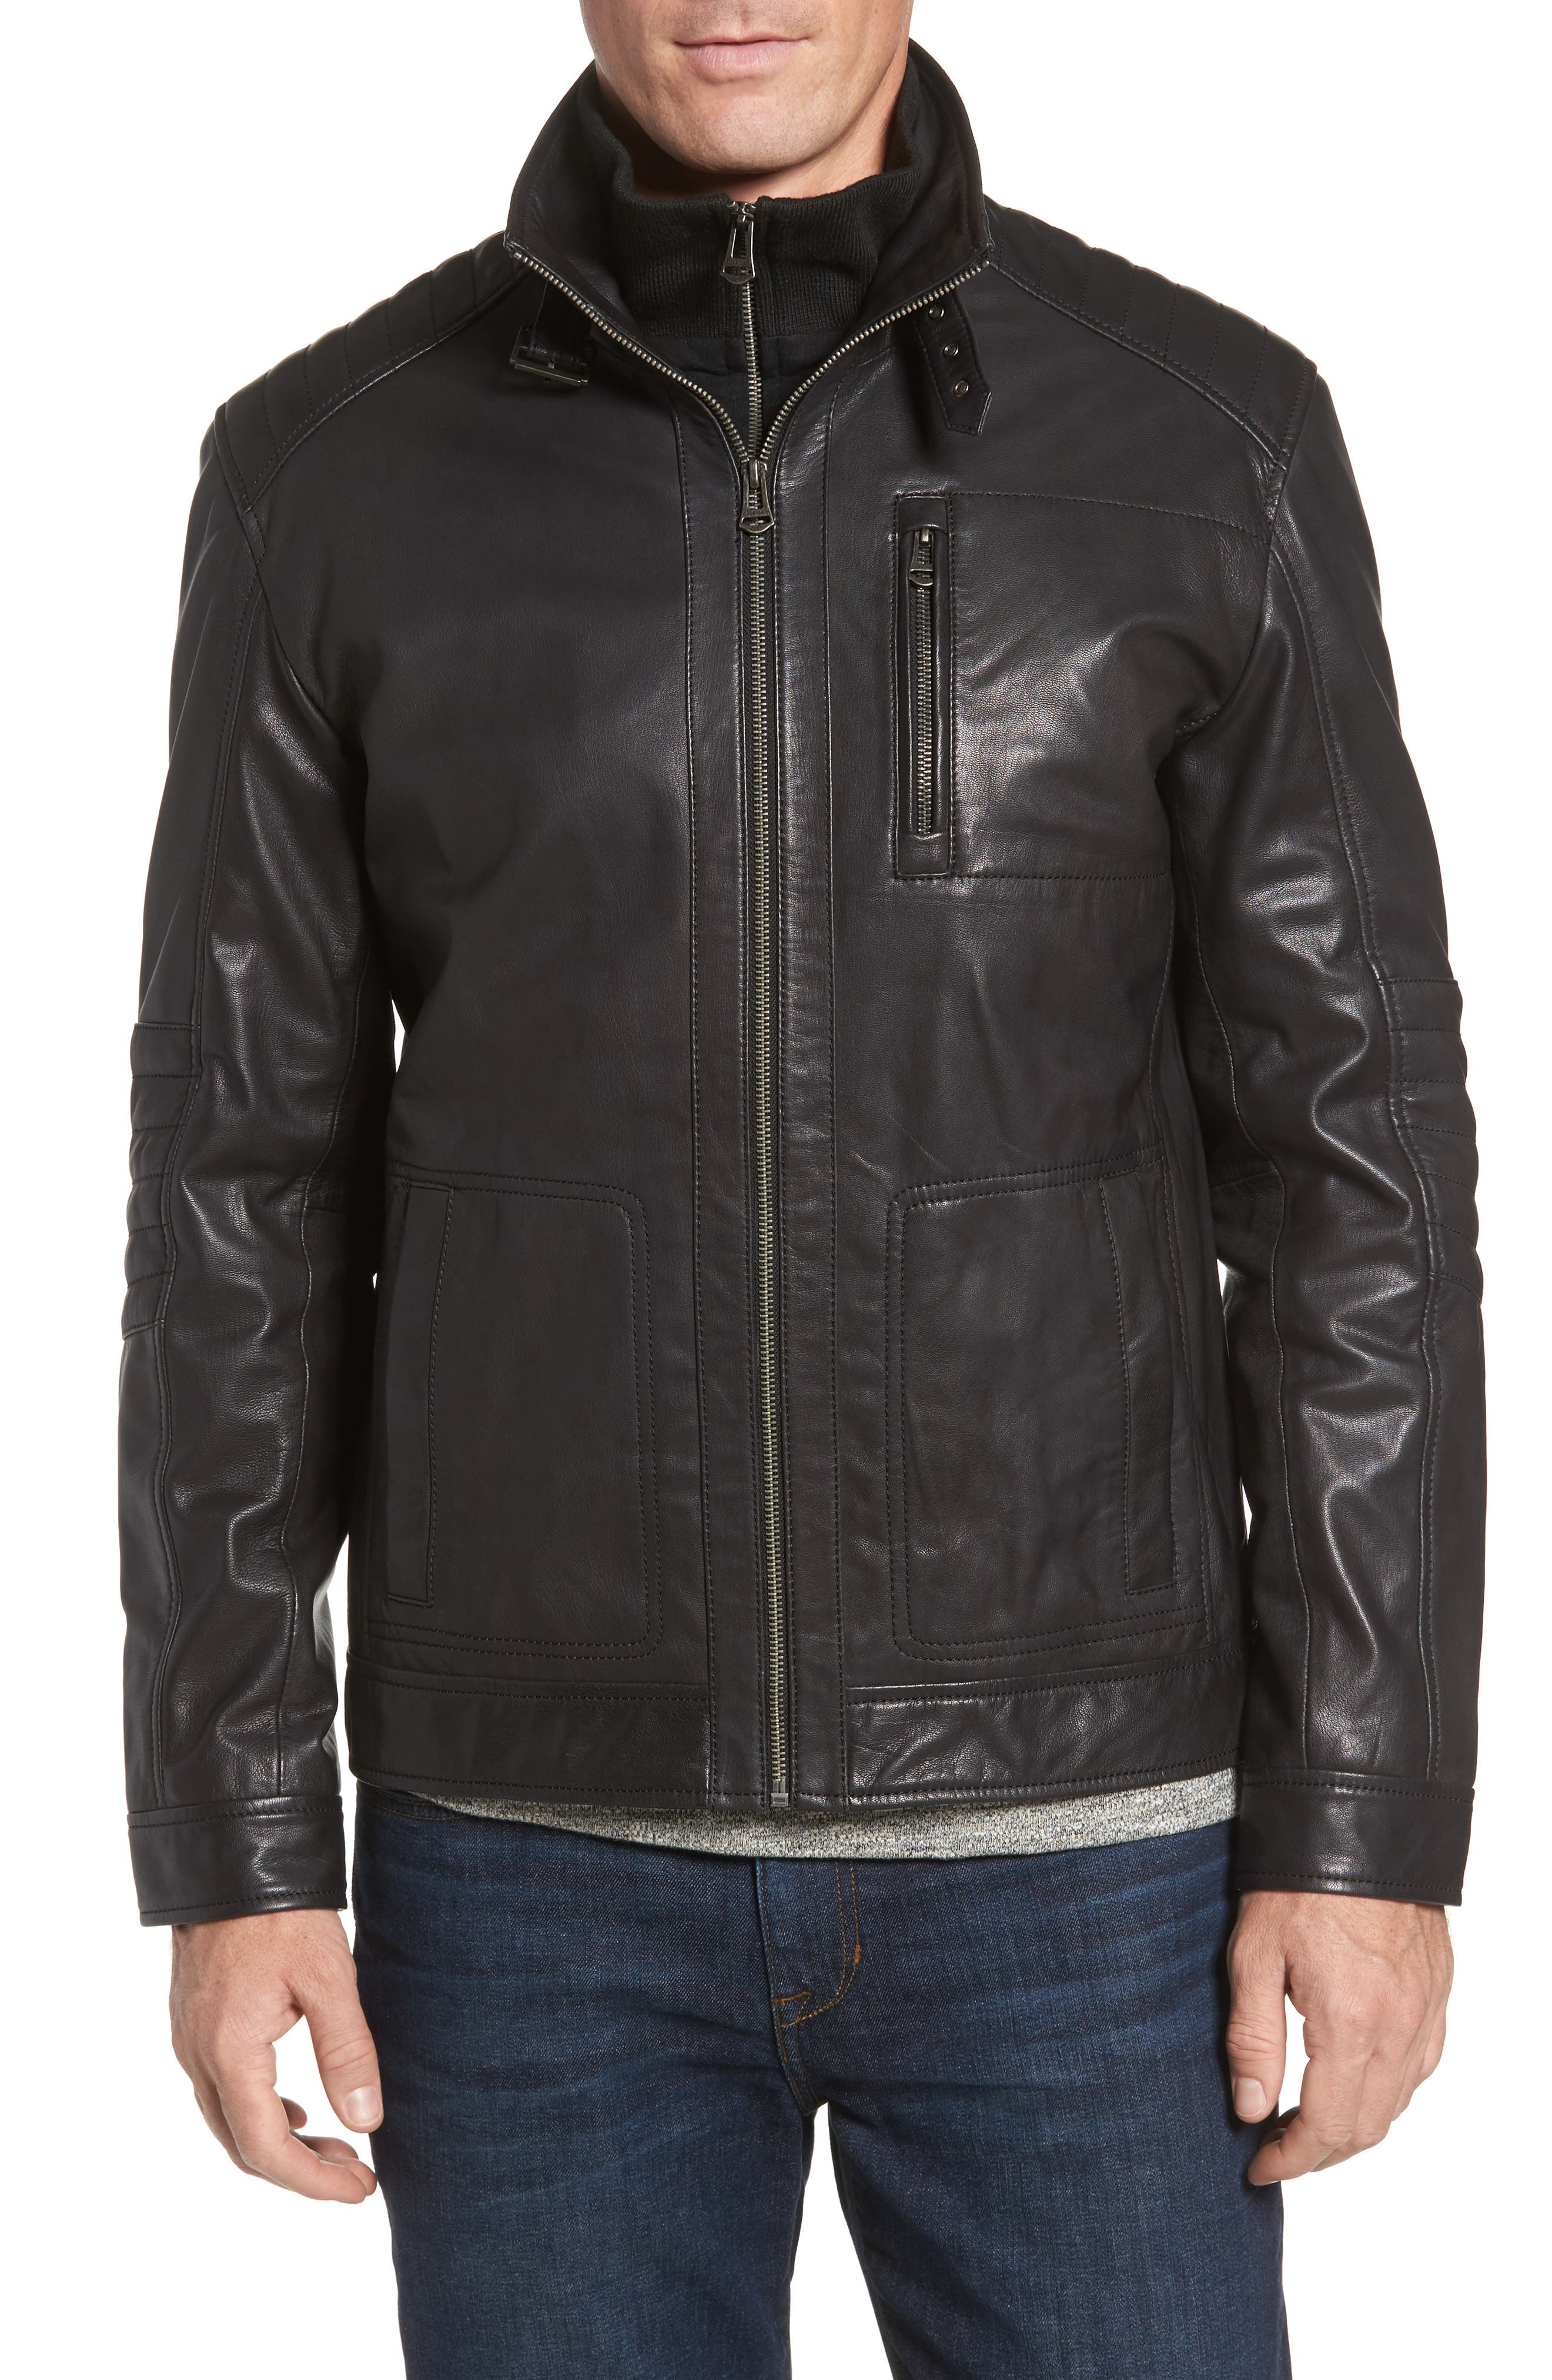 COLE HAAN,                             Washed Leather Moto Jacket with Knit Bib,                             Alternate thumbnail 4, color,                             001